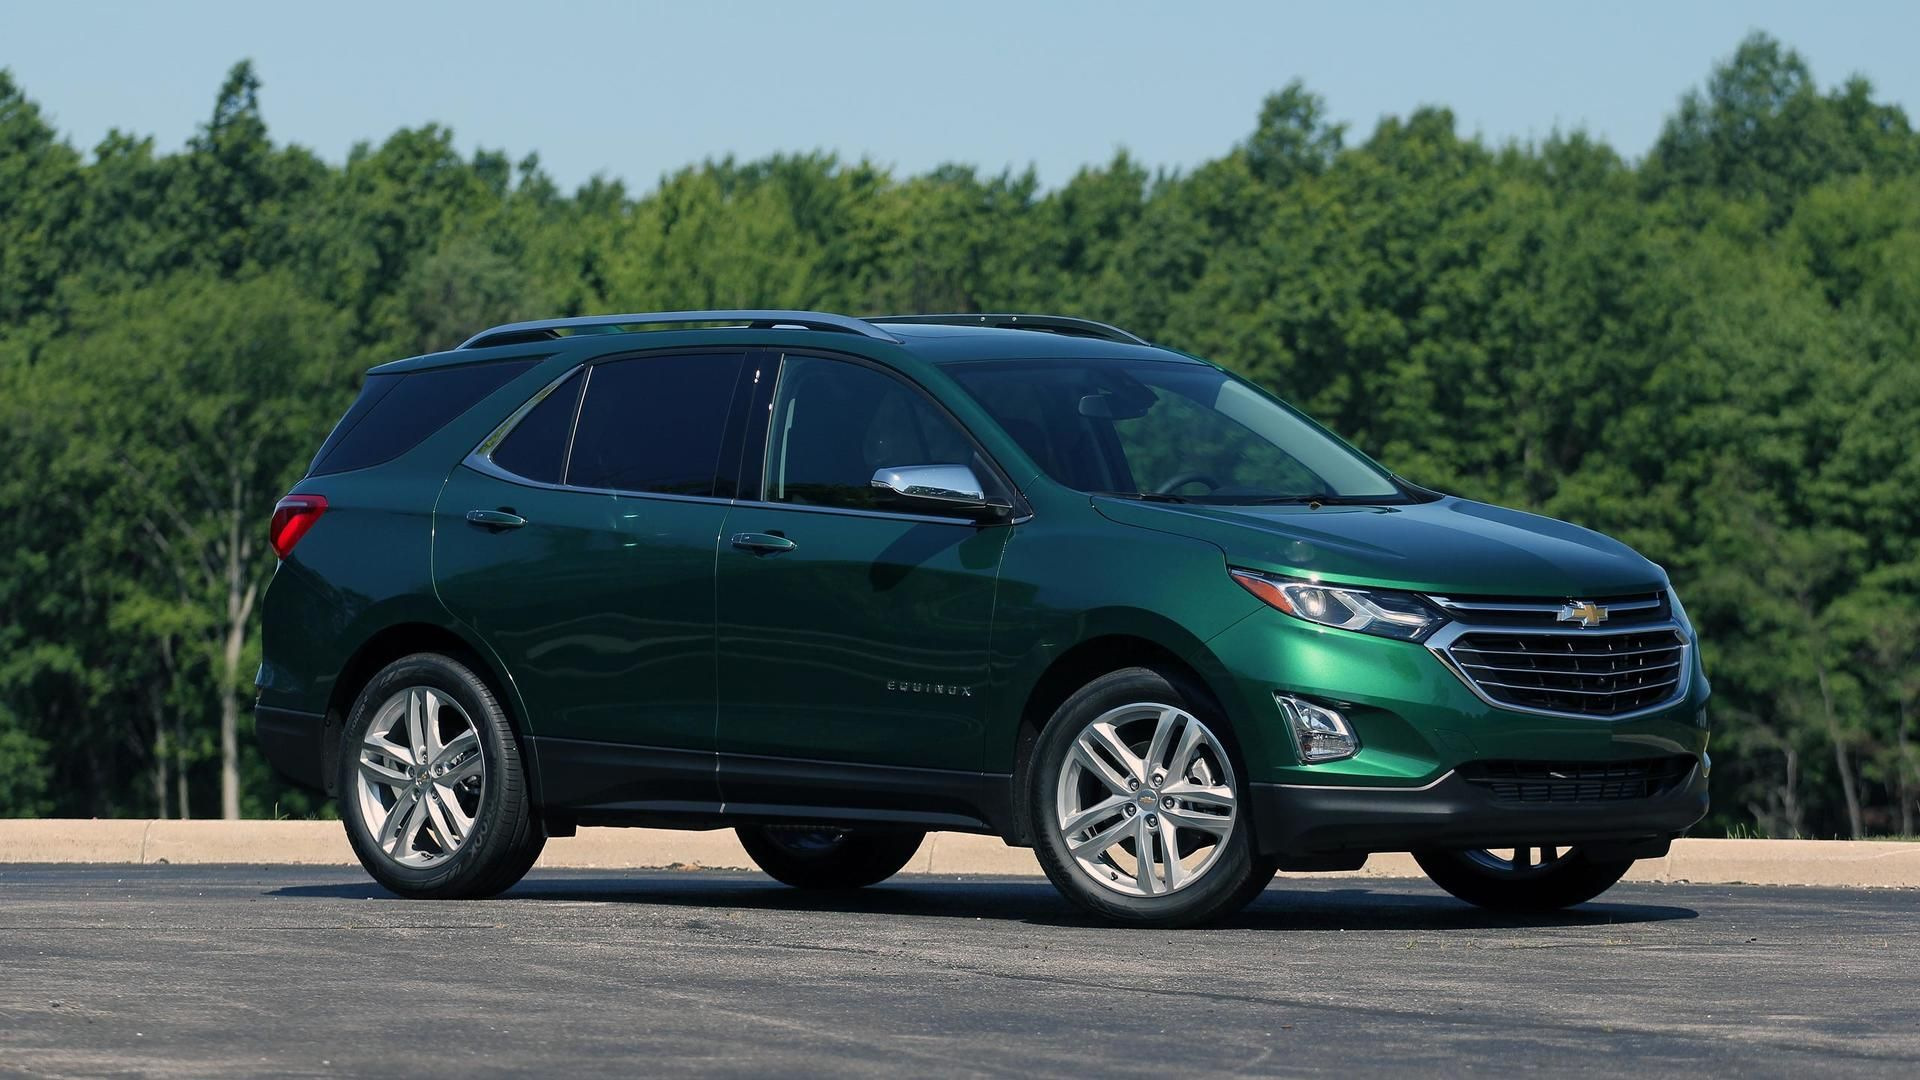 2018 Chevy Equinox Green With Special Offer Price At Chevrolet Houston Tx Chevy Equinox Chevrolet Equinox Chevrolet